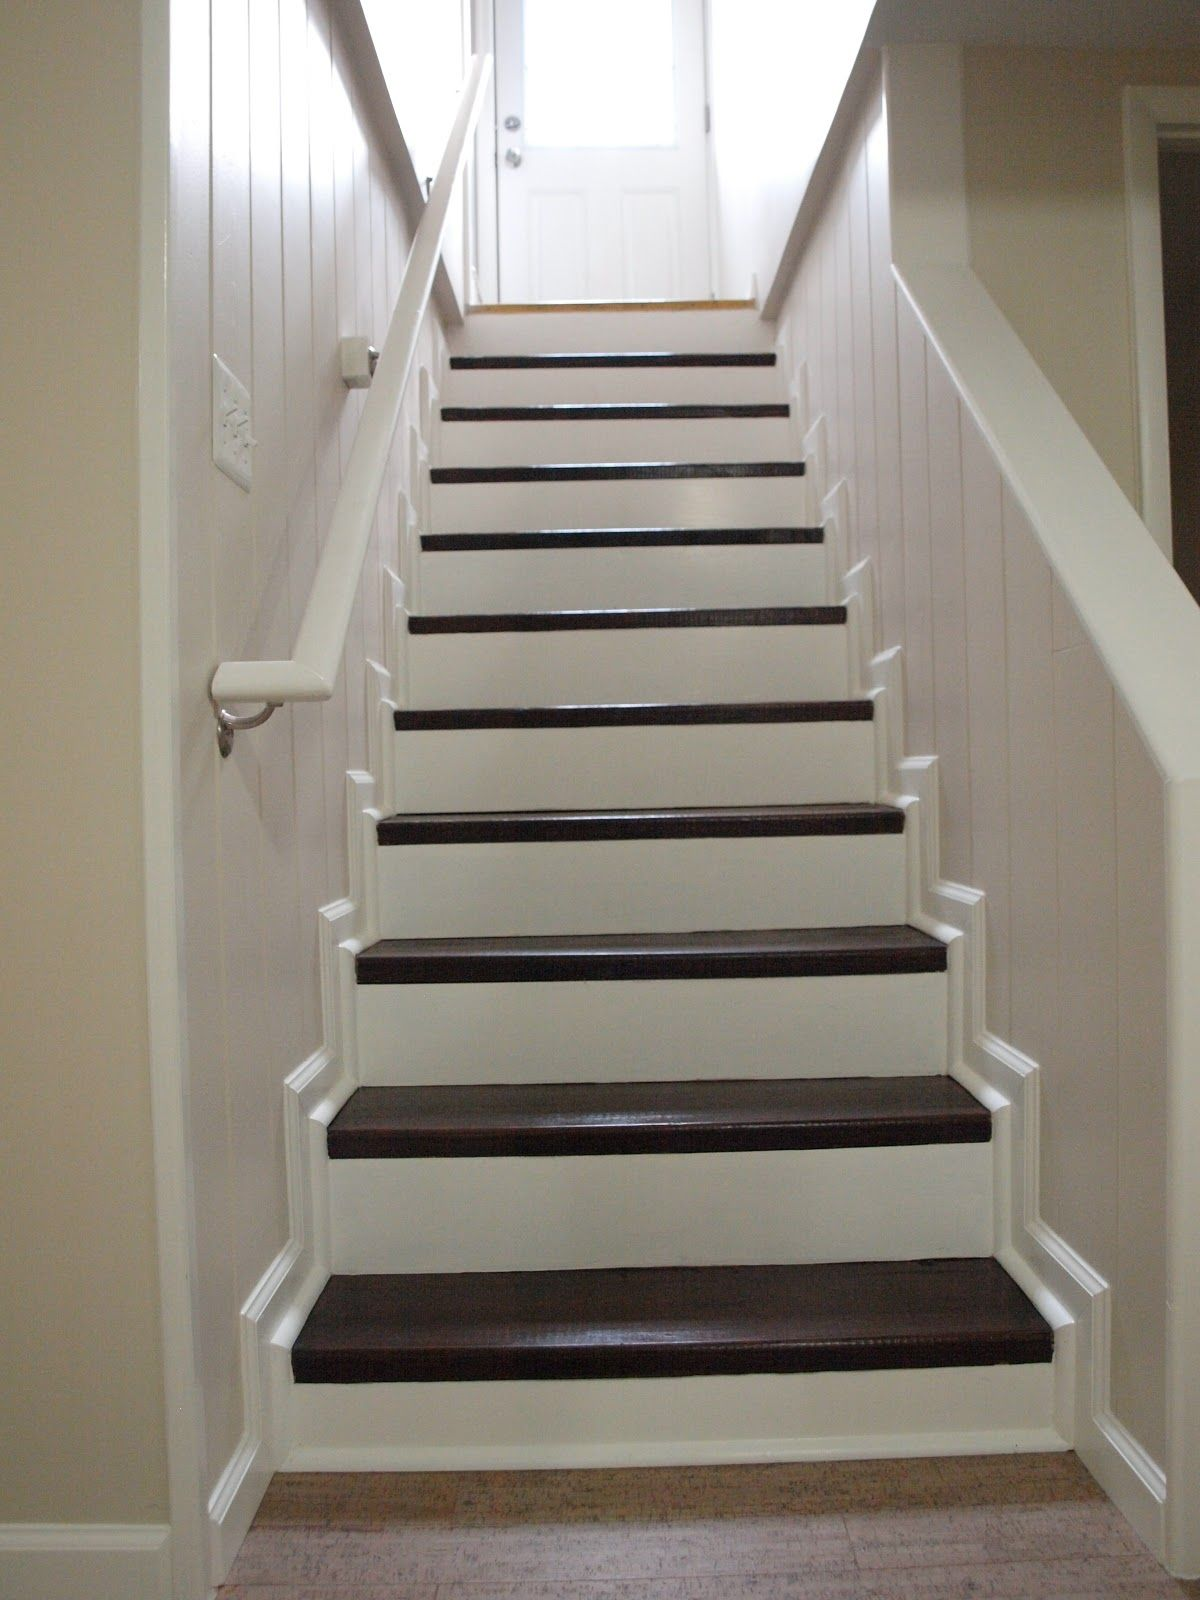 Flooring Options For Basement Stairs Basements Are An Important Part Of Most Homes They Are Generally Us Basement Stairs Finishing Basement Flooring Options